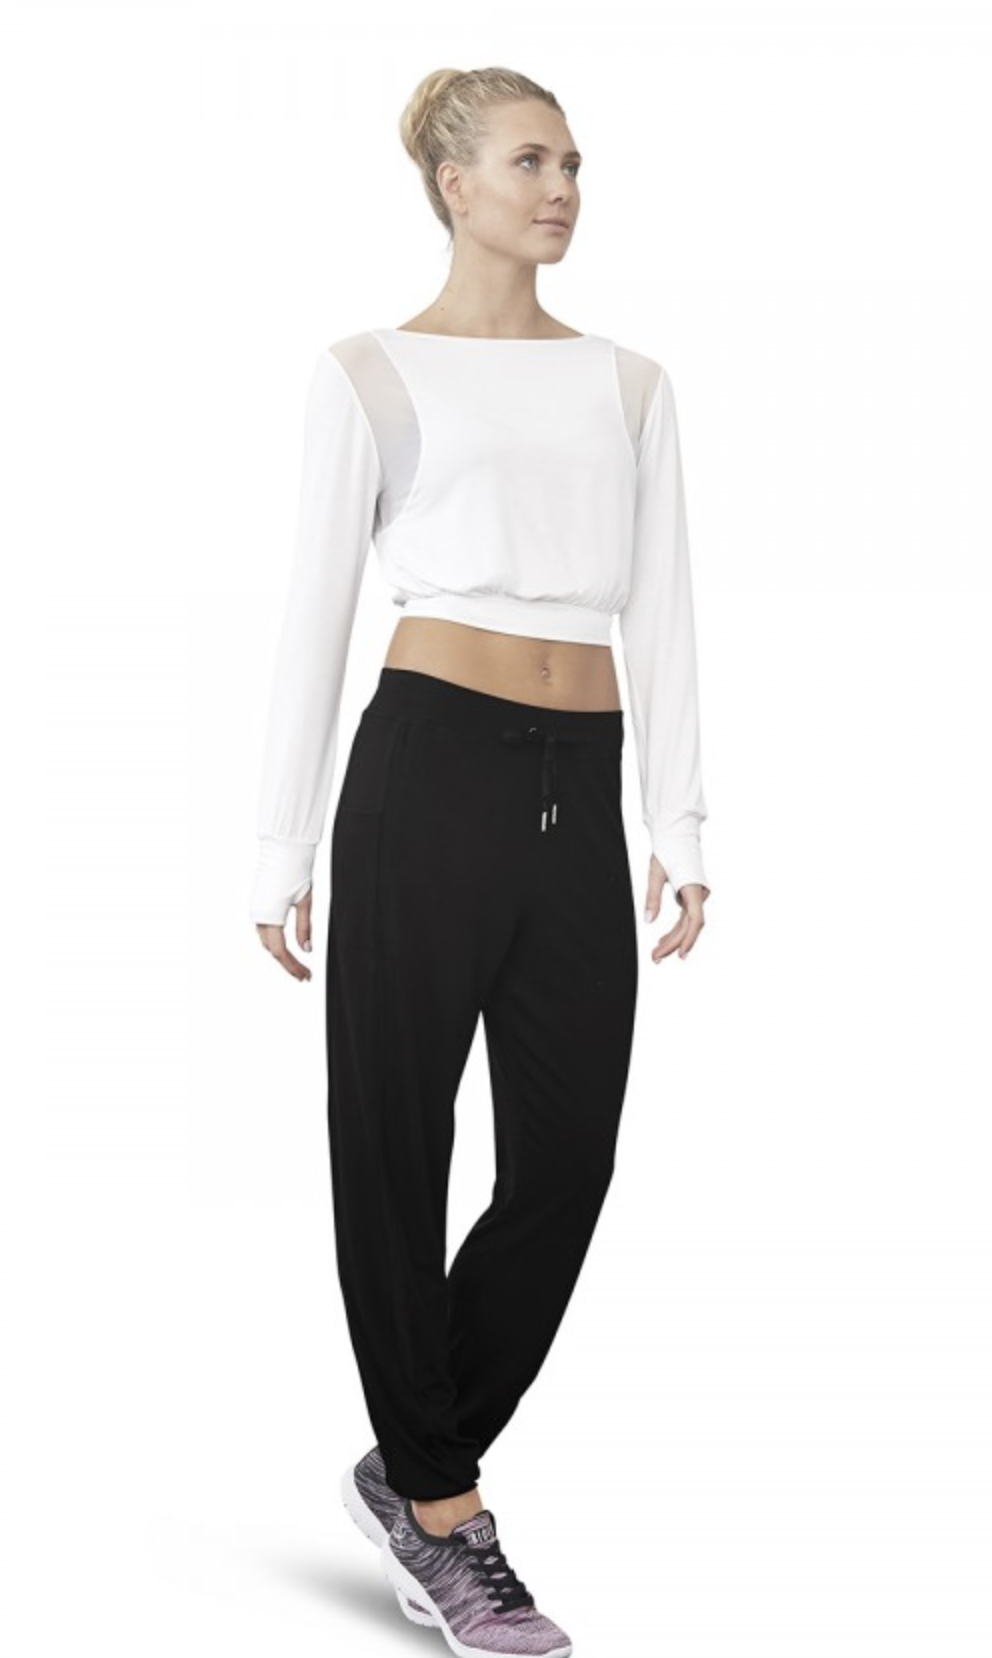 Small and Medium Dance Top Long Sleeve by Bloch Adult Petite